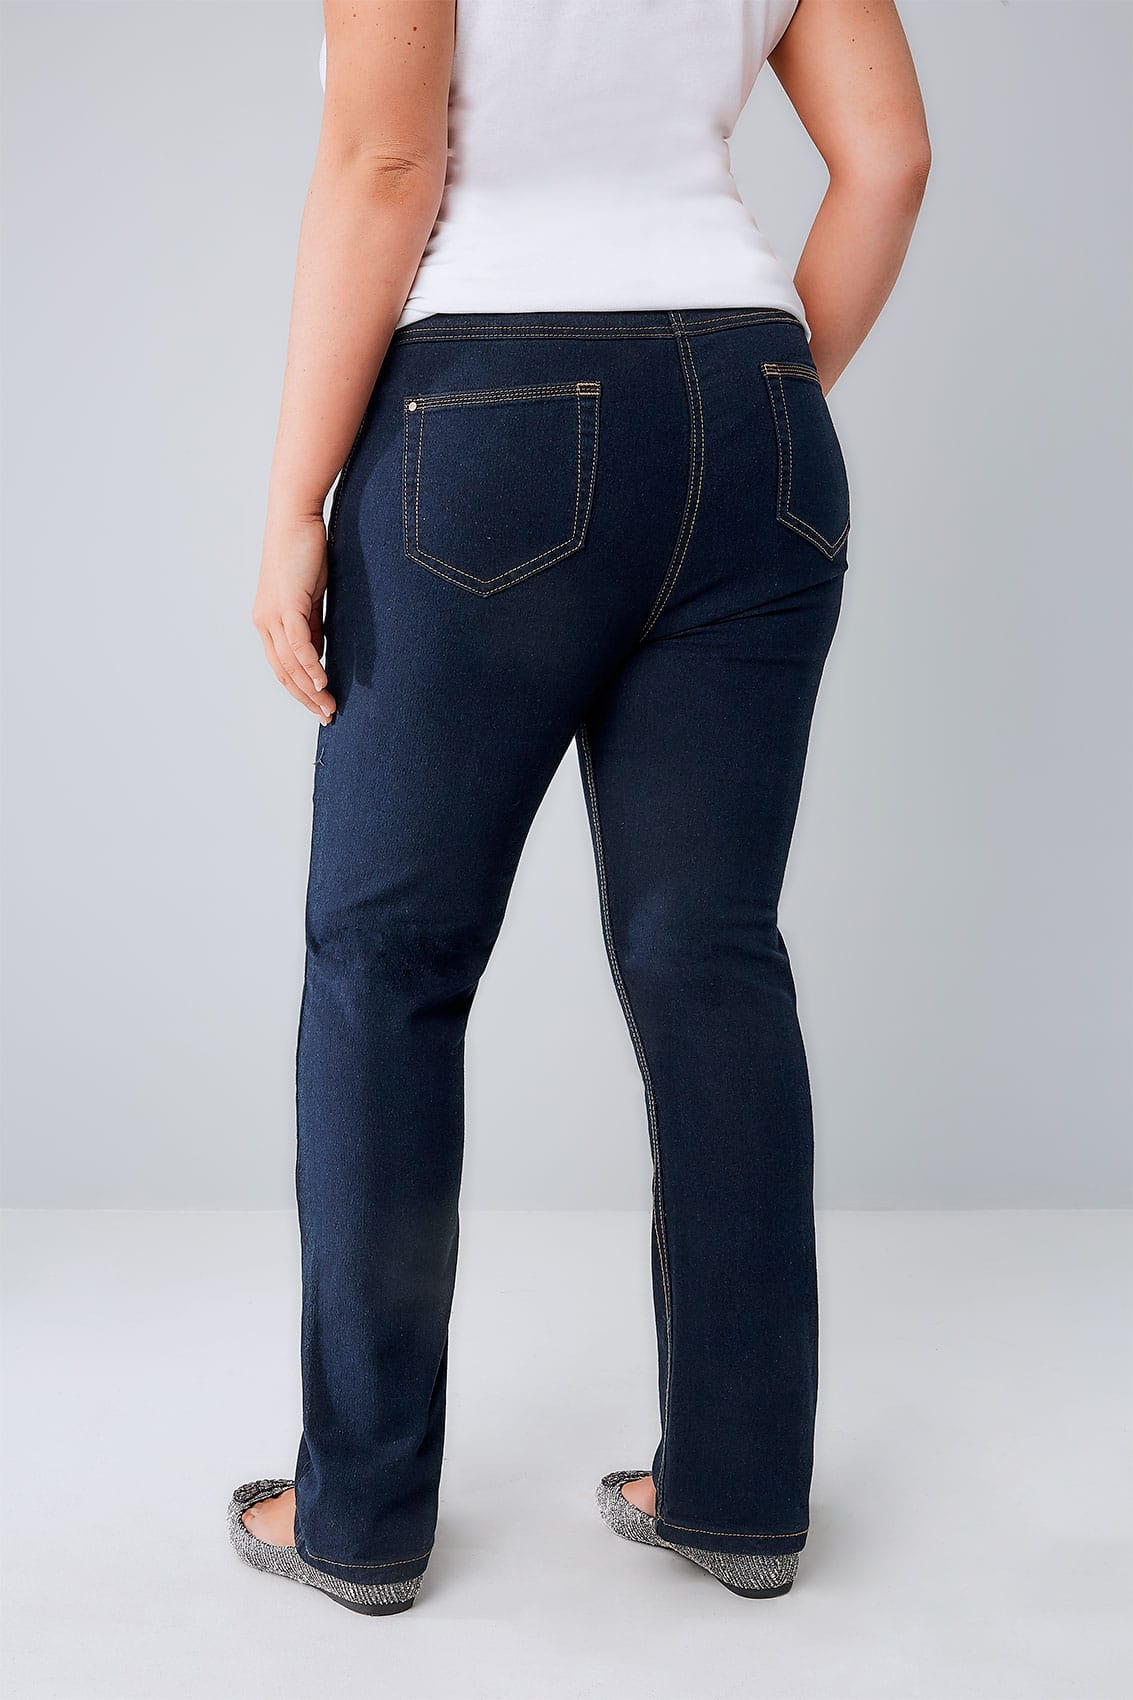 Indigo Straight Leg 5 Pocket Denim Ruby Jeans Plus Size 14